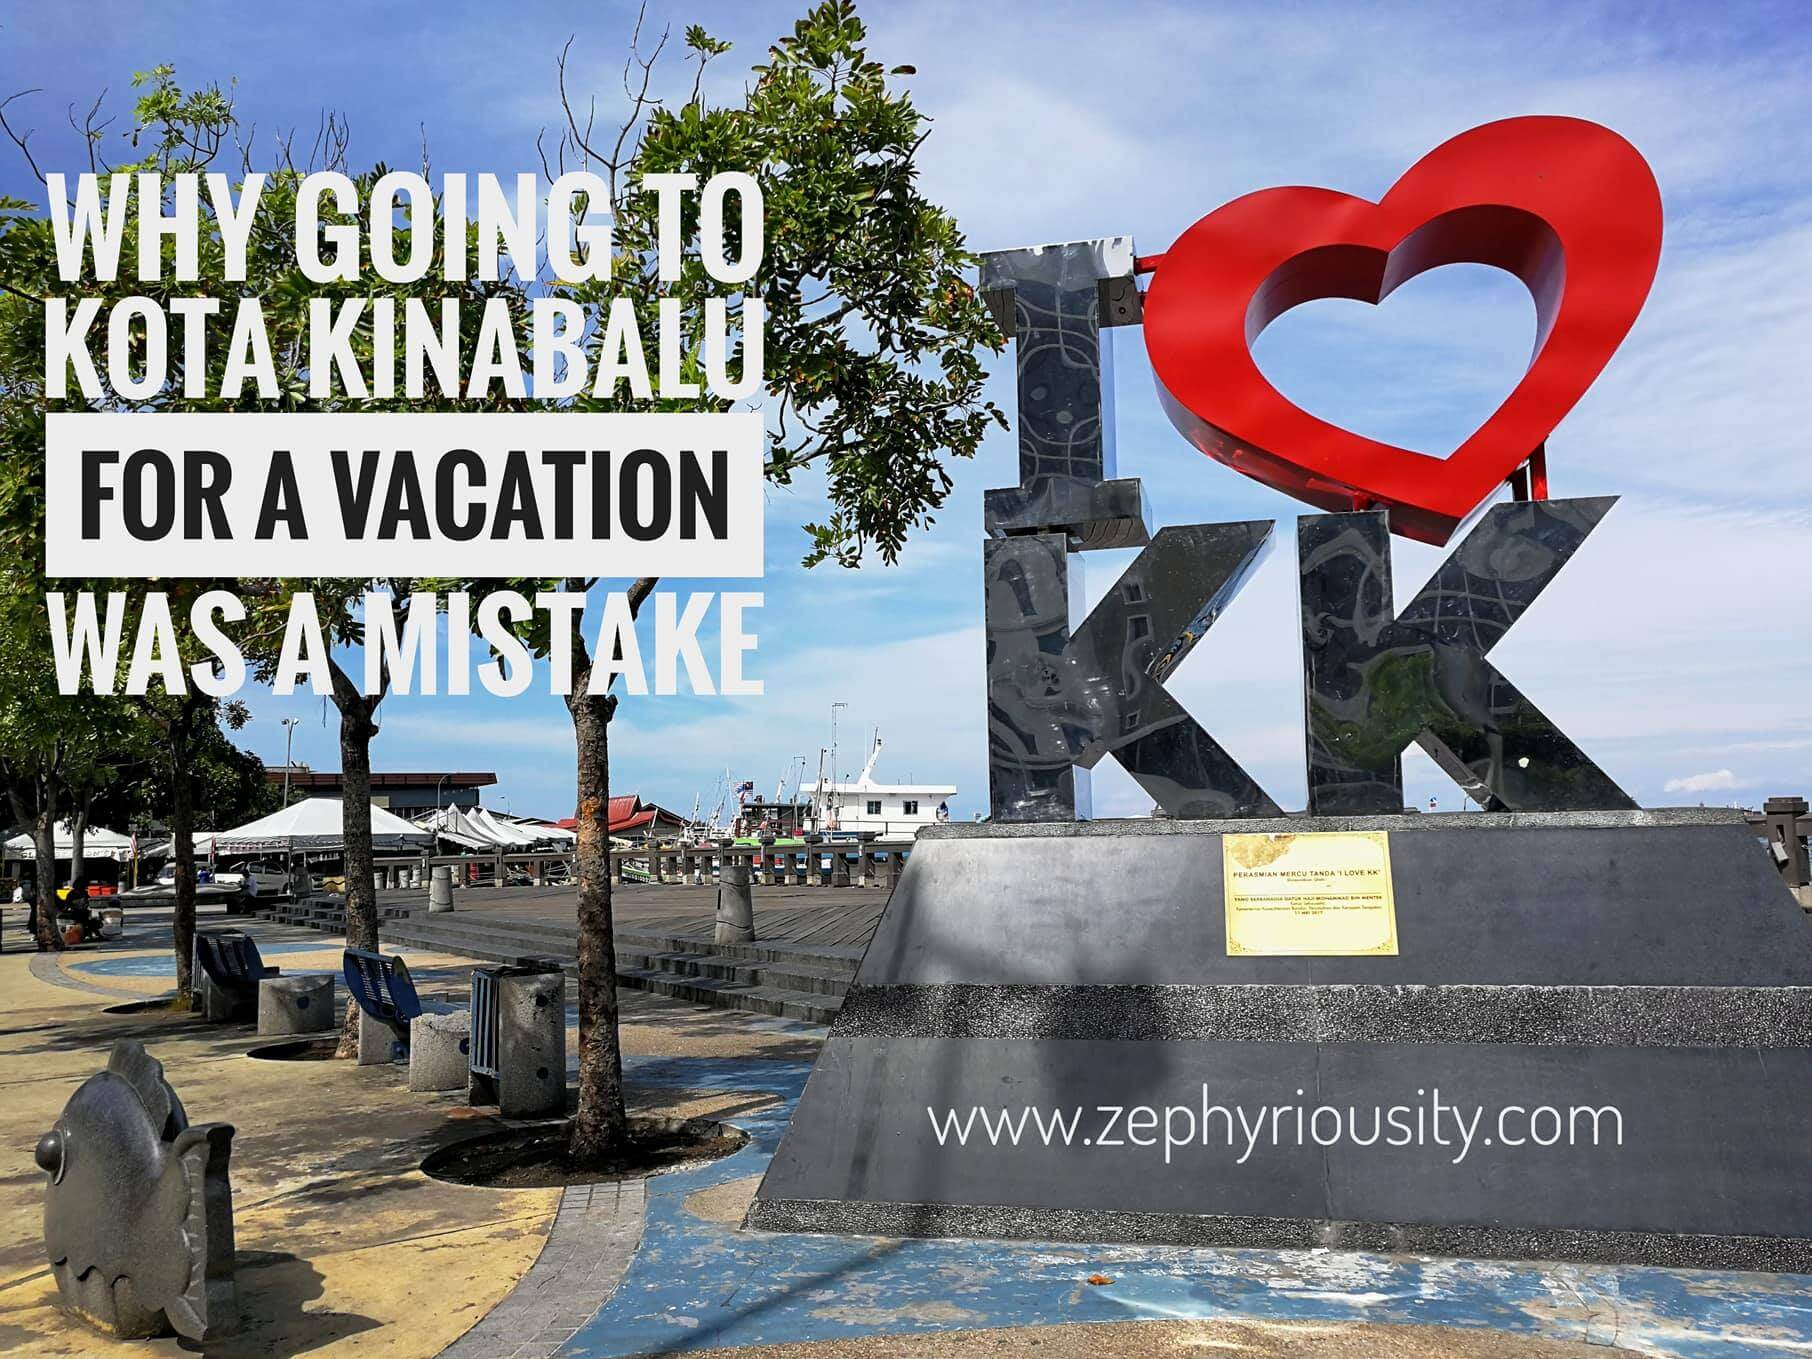 Why Going To Kota Kinabalu For A Vacation Was Mistake